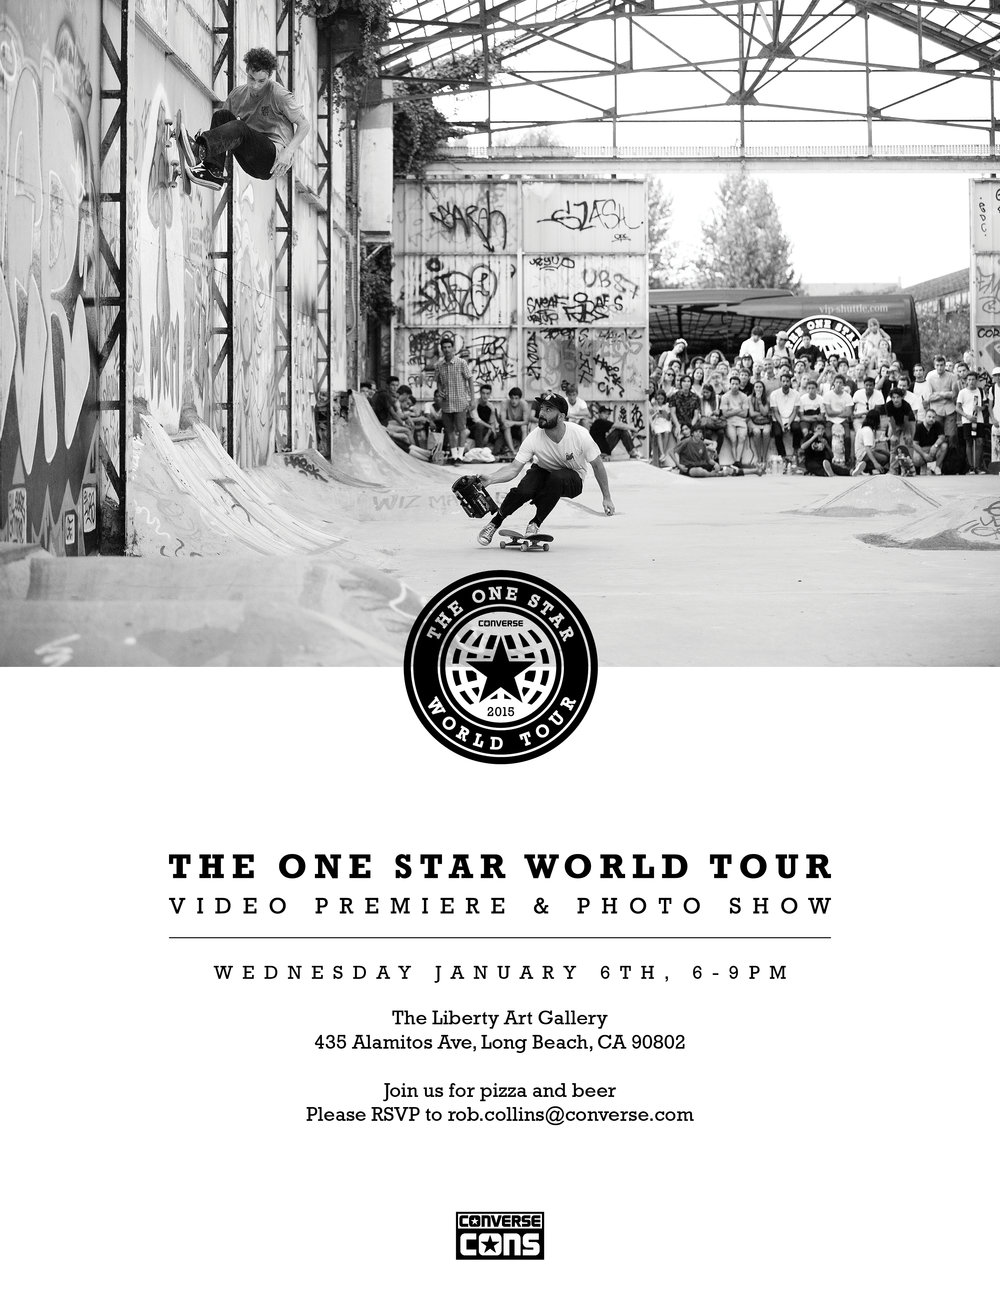 One Star World Tour Show Invitation